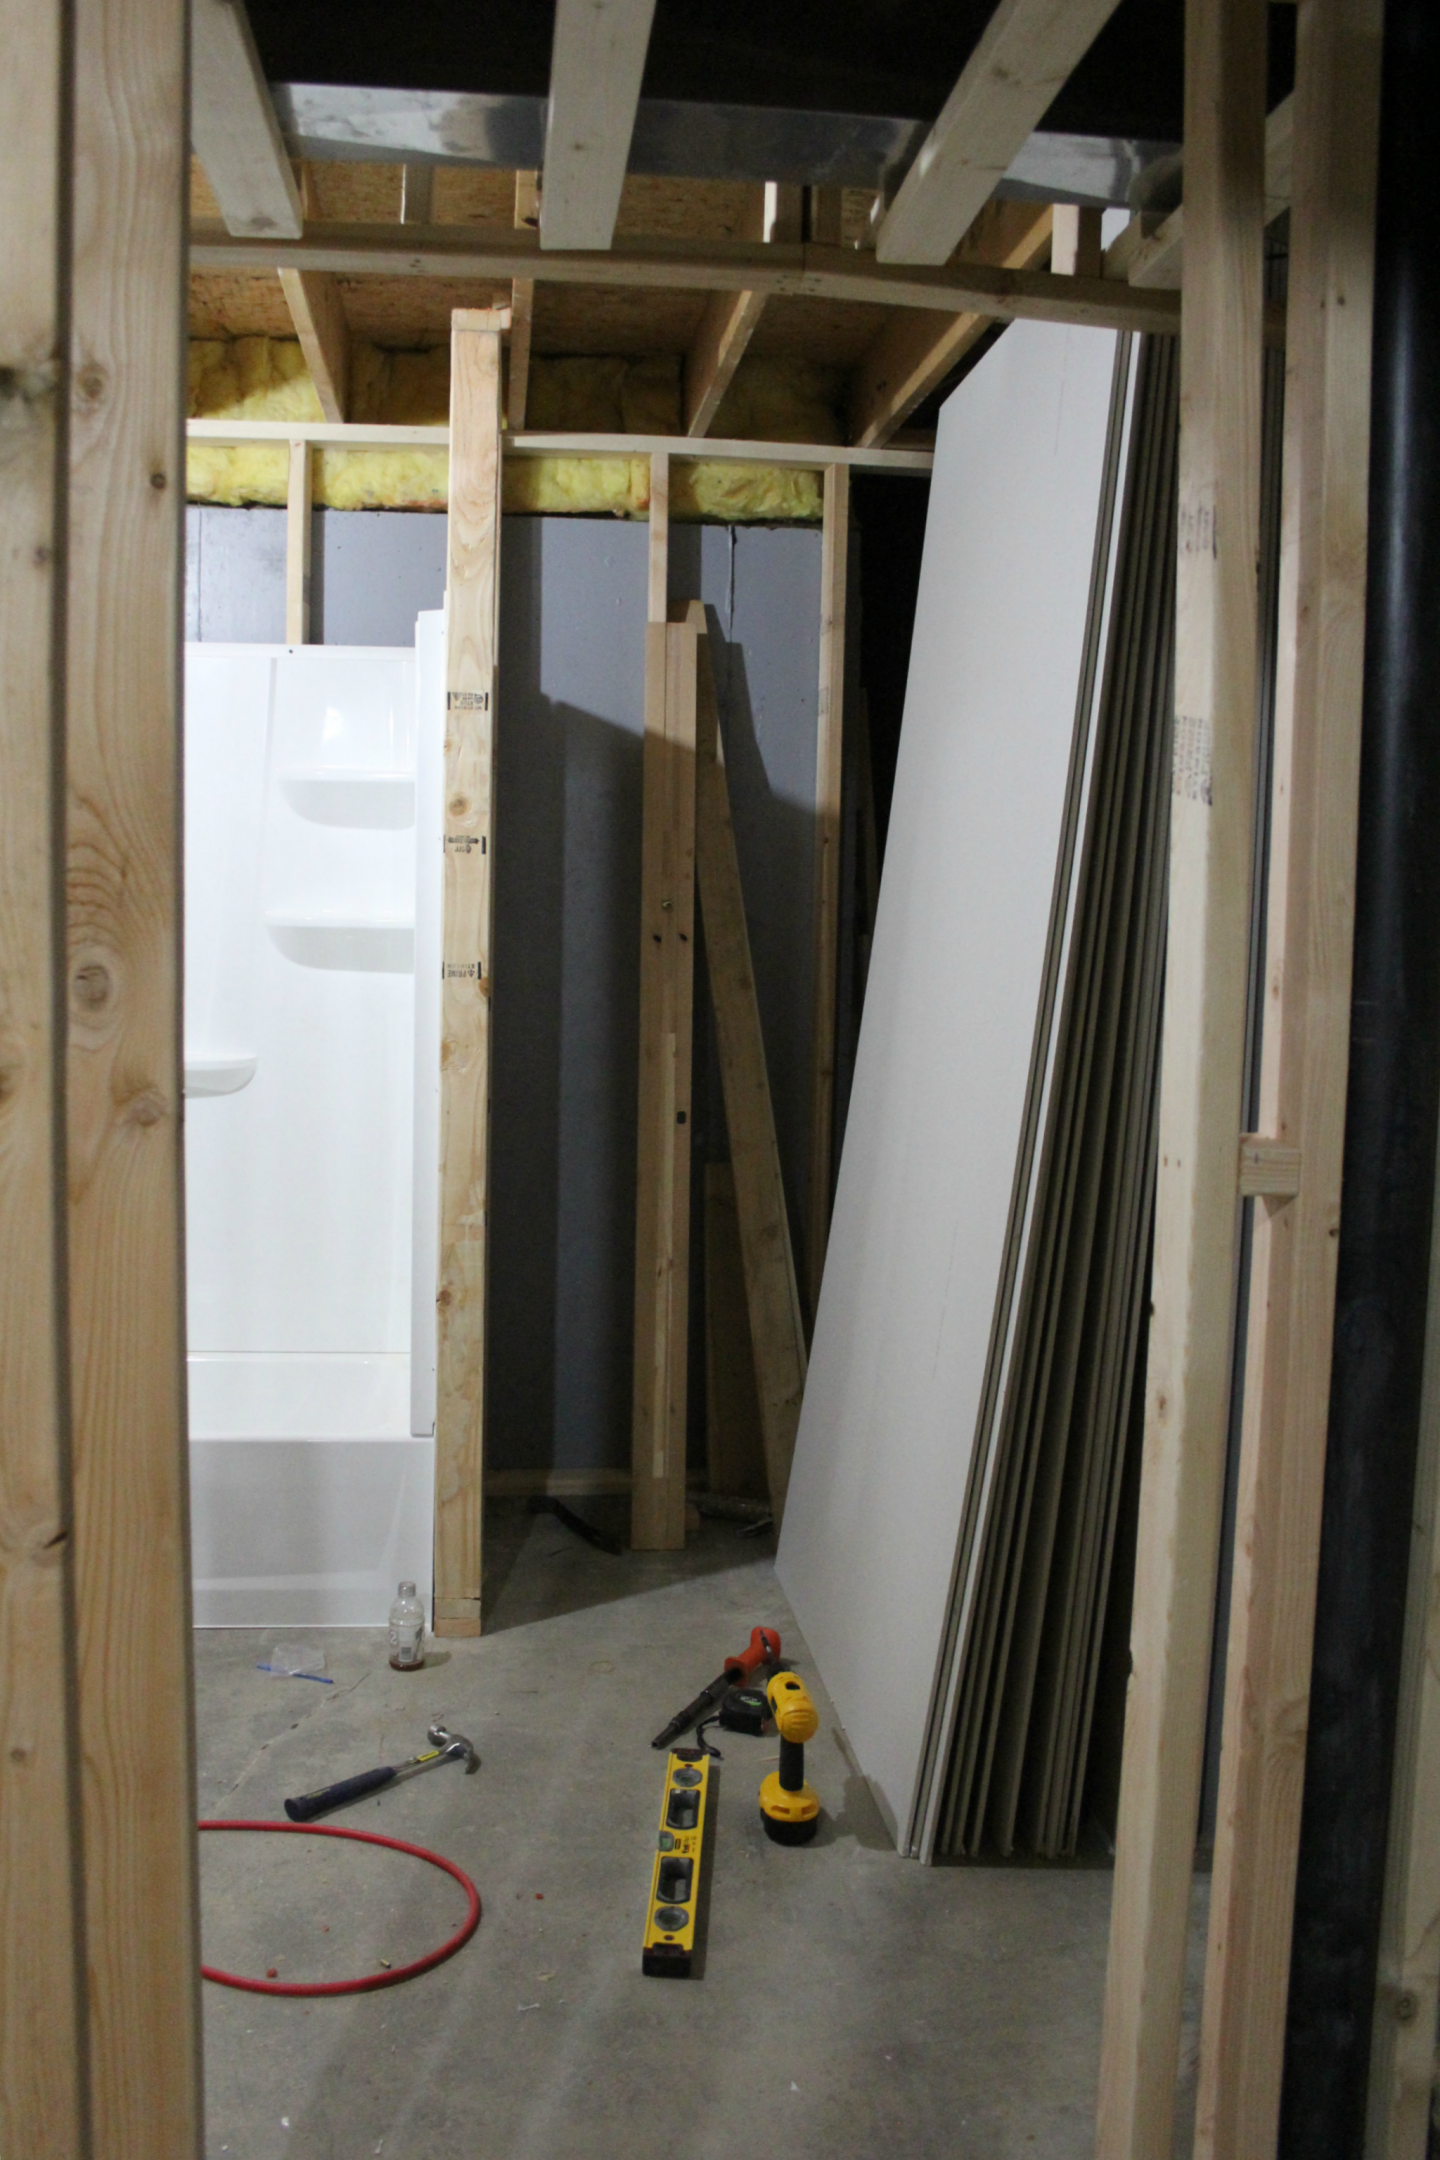 See how we added a full bathroom to our home, stealing unfinished space in the basement. #beforeandafter #renovation #bathroomdesign